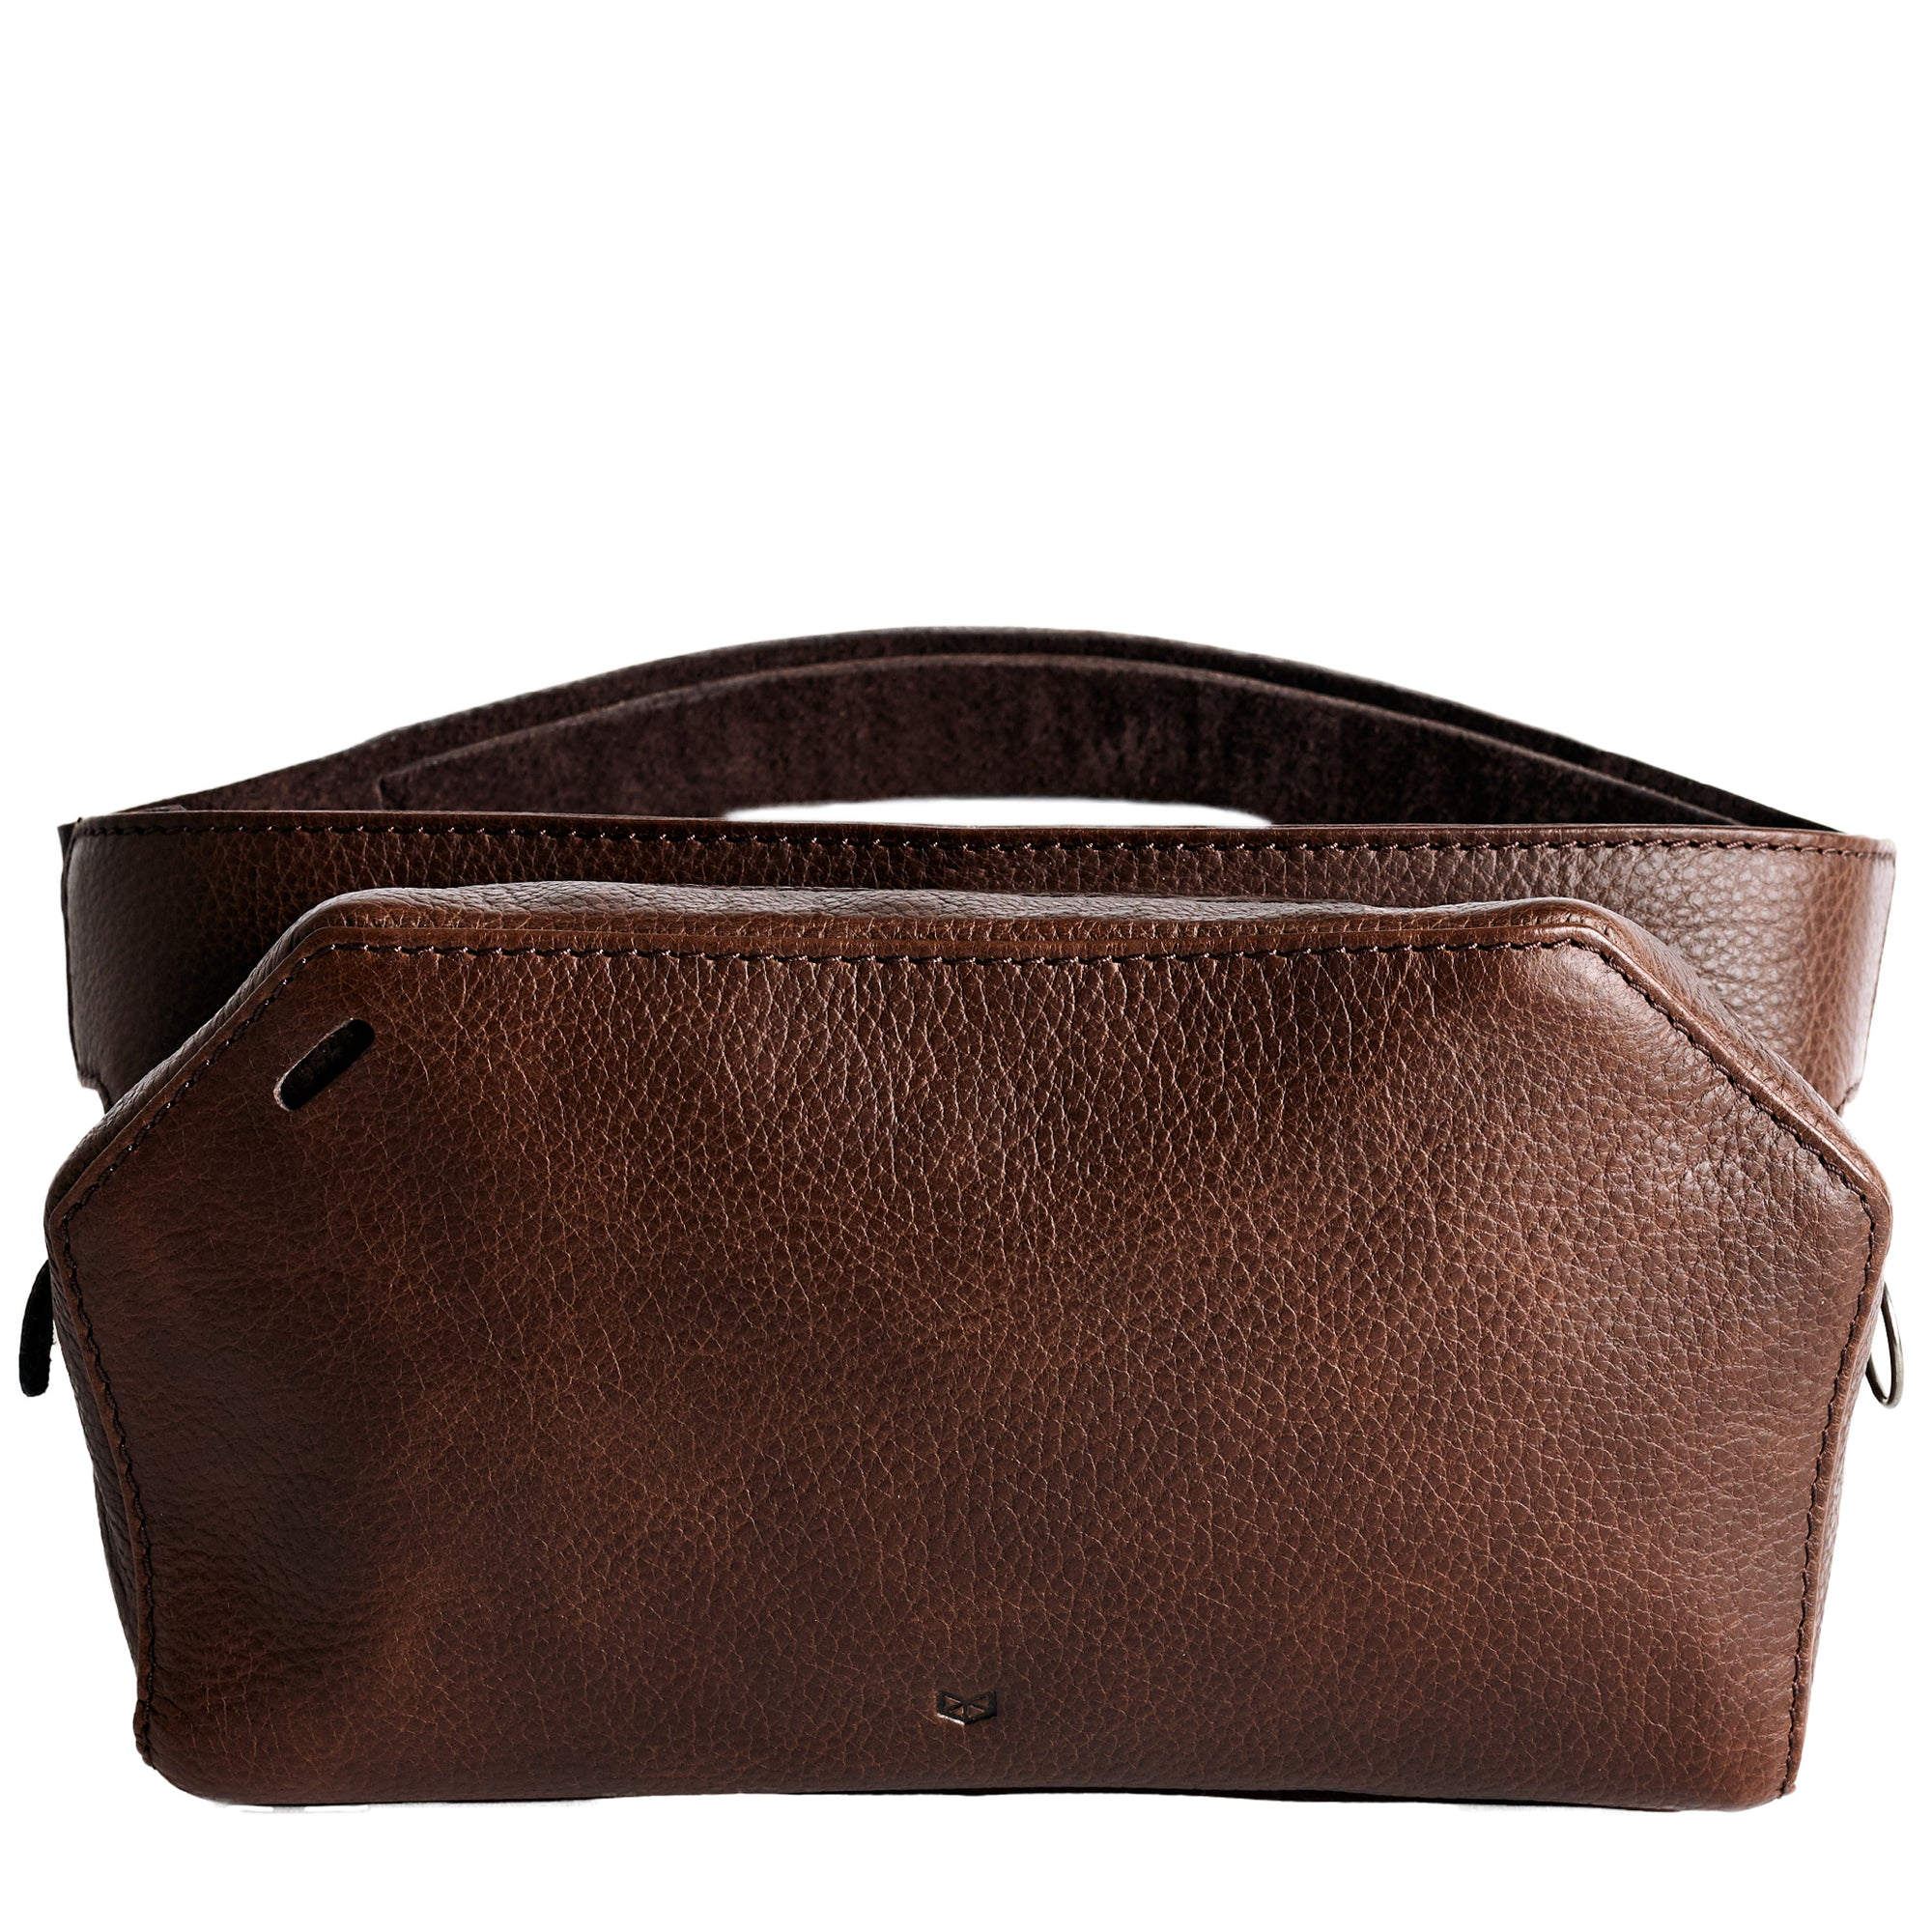 Brown Leather Fanny Pack by Capra